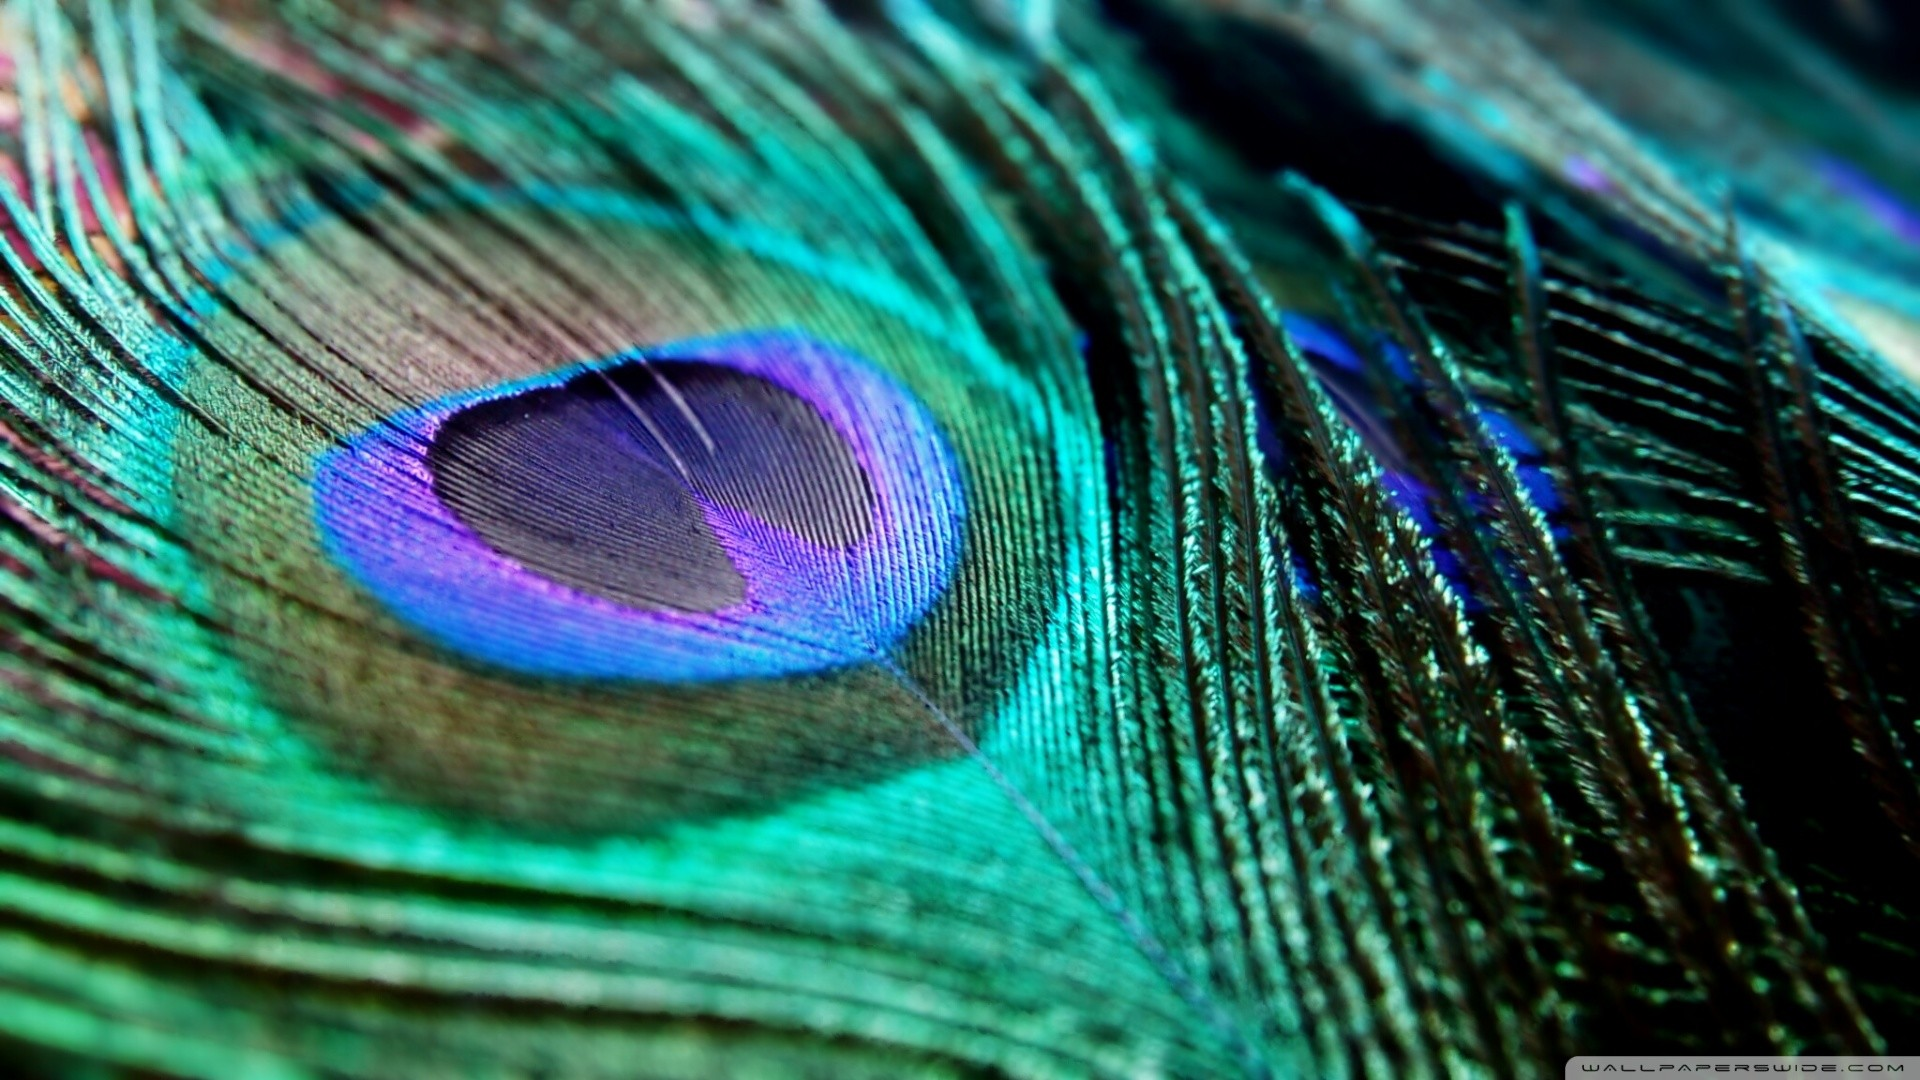 Blue peacock feather background